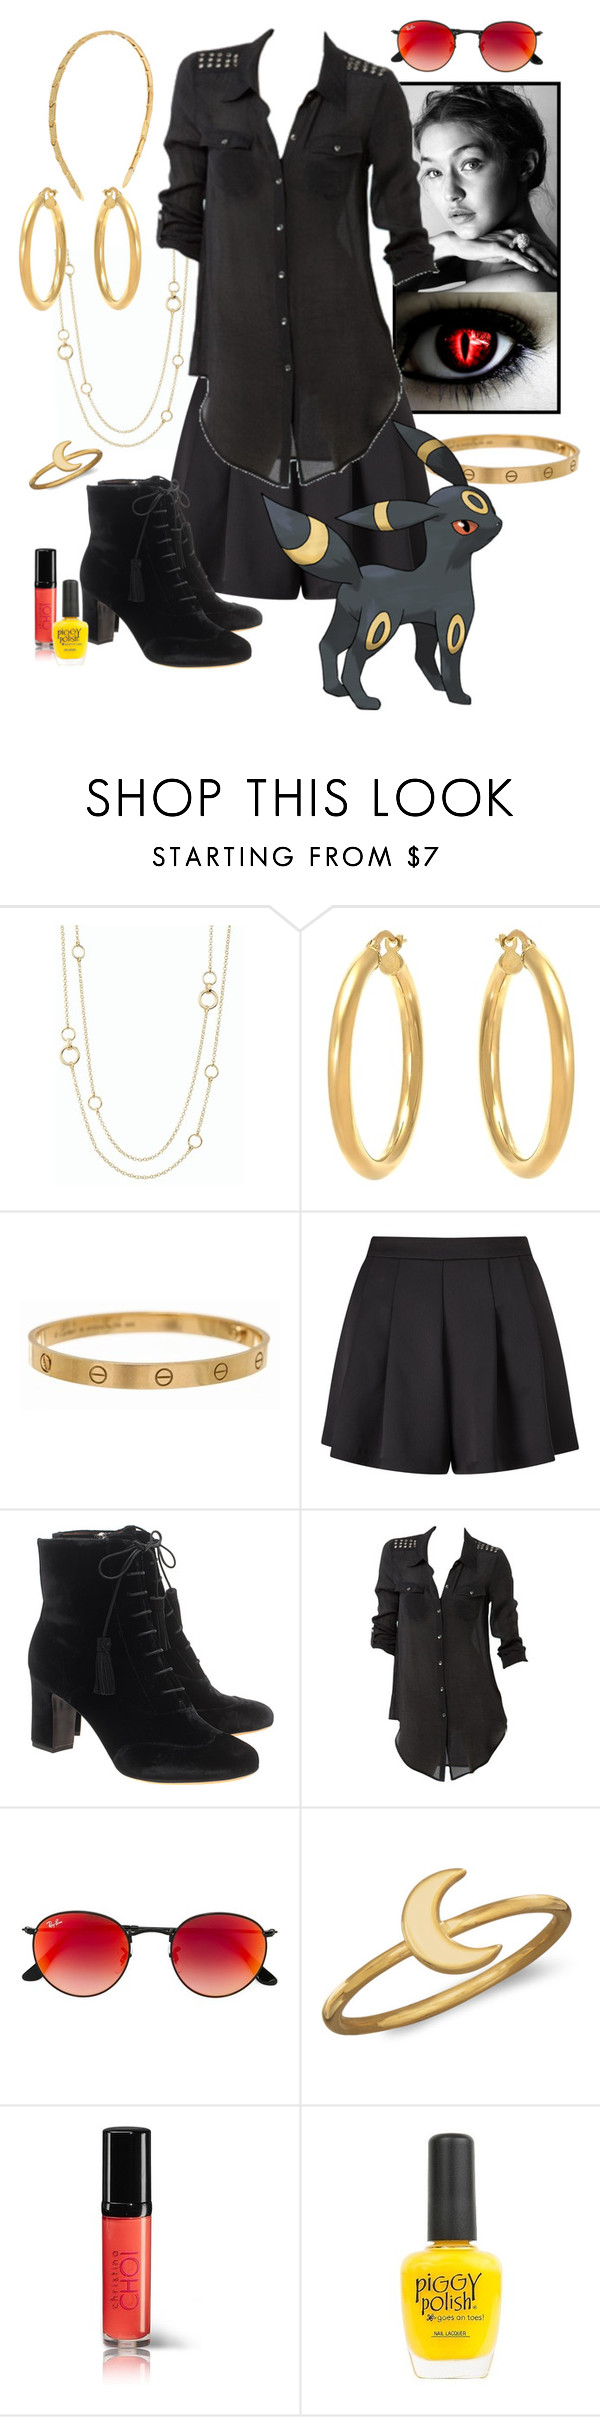 """Umbreon"" by lunar-exorcism ❤ liked on Polyvore featuring Talbots, Cartier, Miss Selfridge, Tabitha Simmons, Bettina Liano, Ray-Ban, BillyTheTree, Piggy Polish, Henri Bendel and Pokemon"